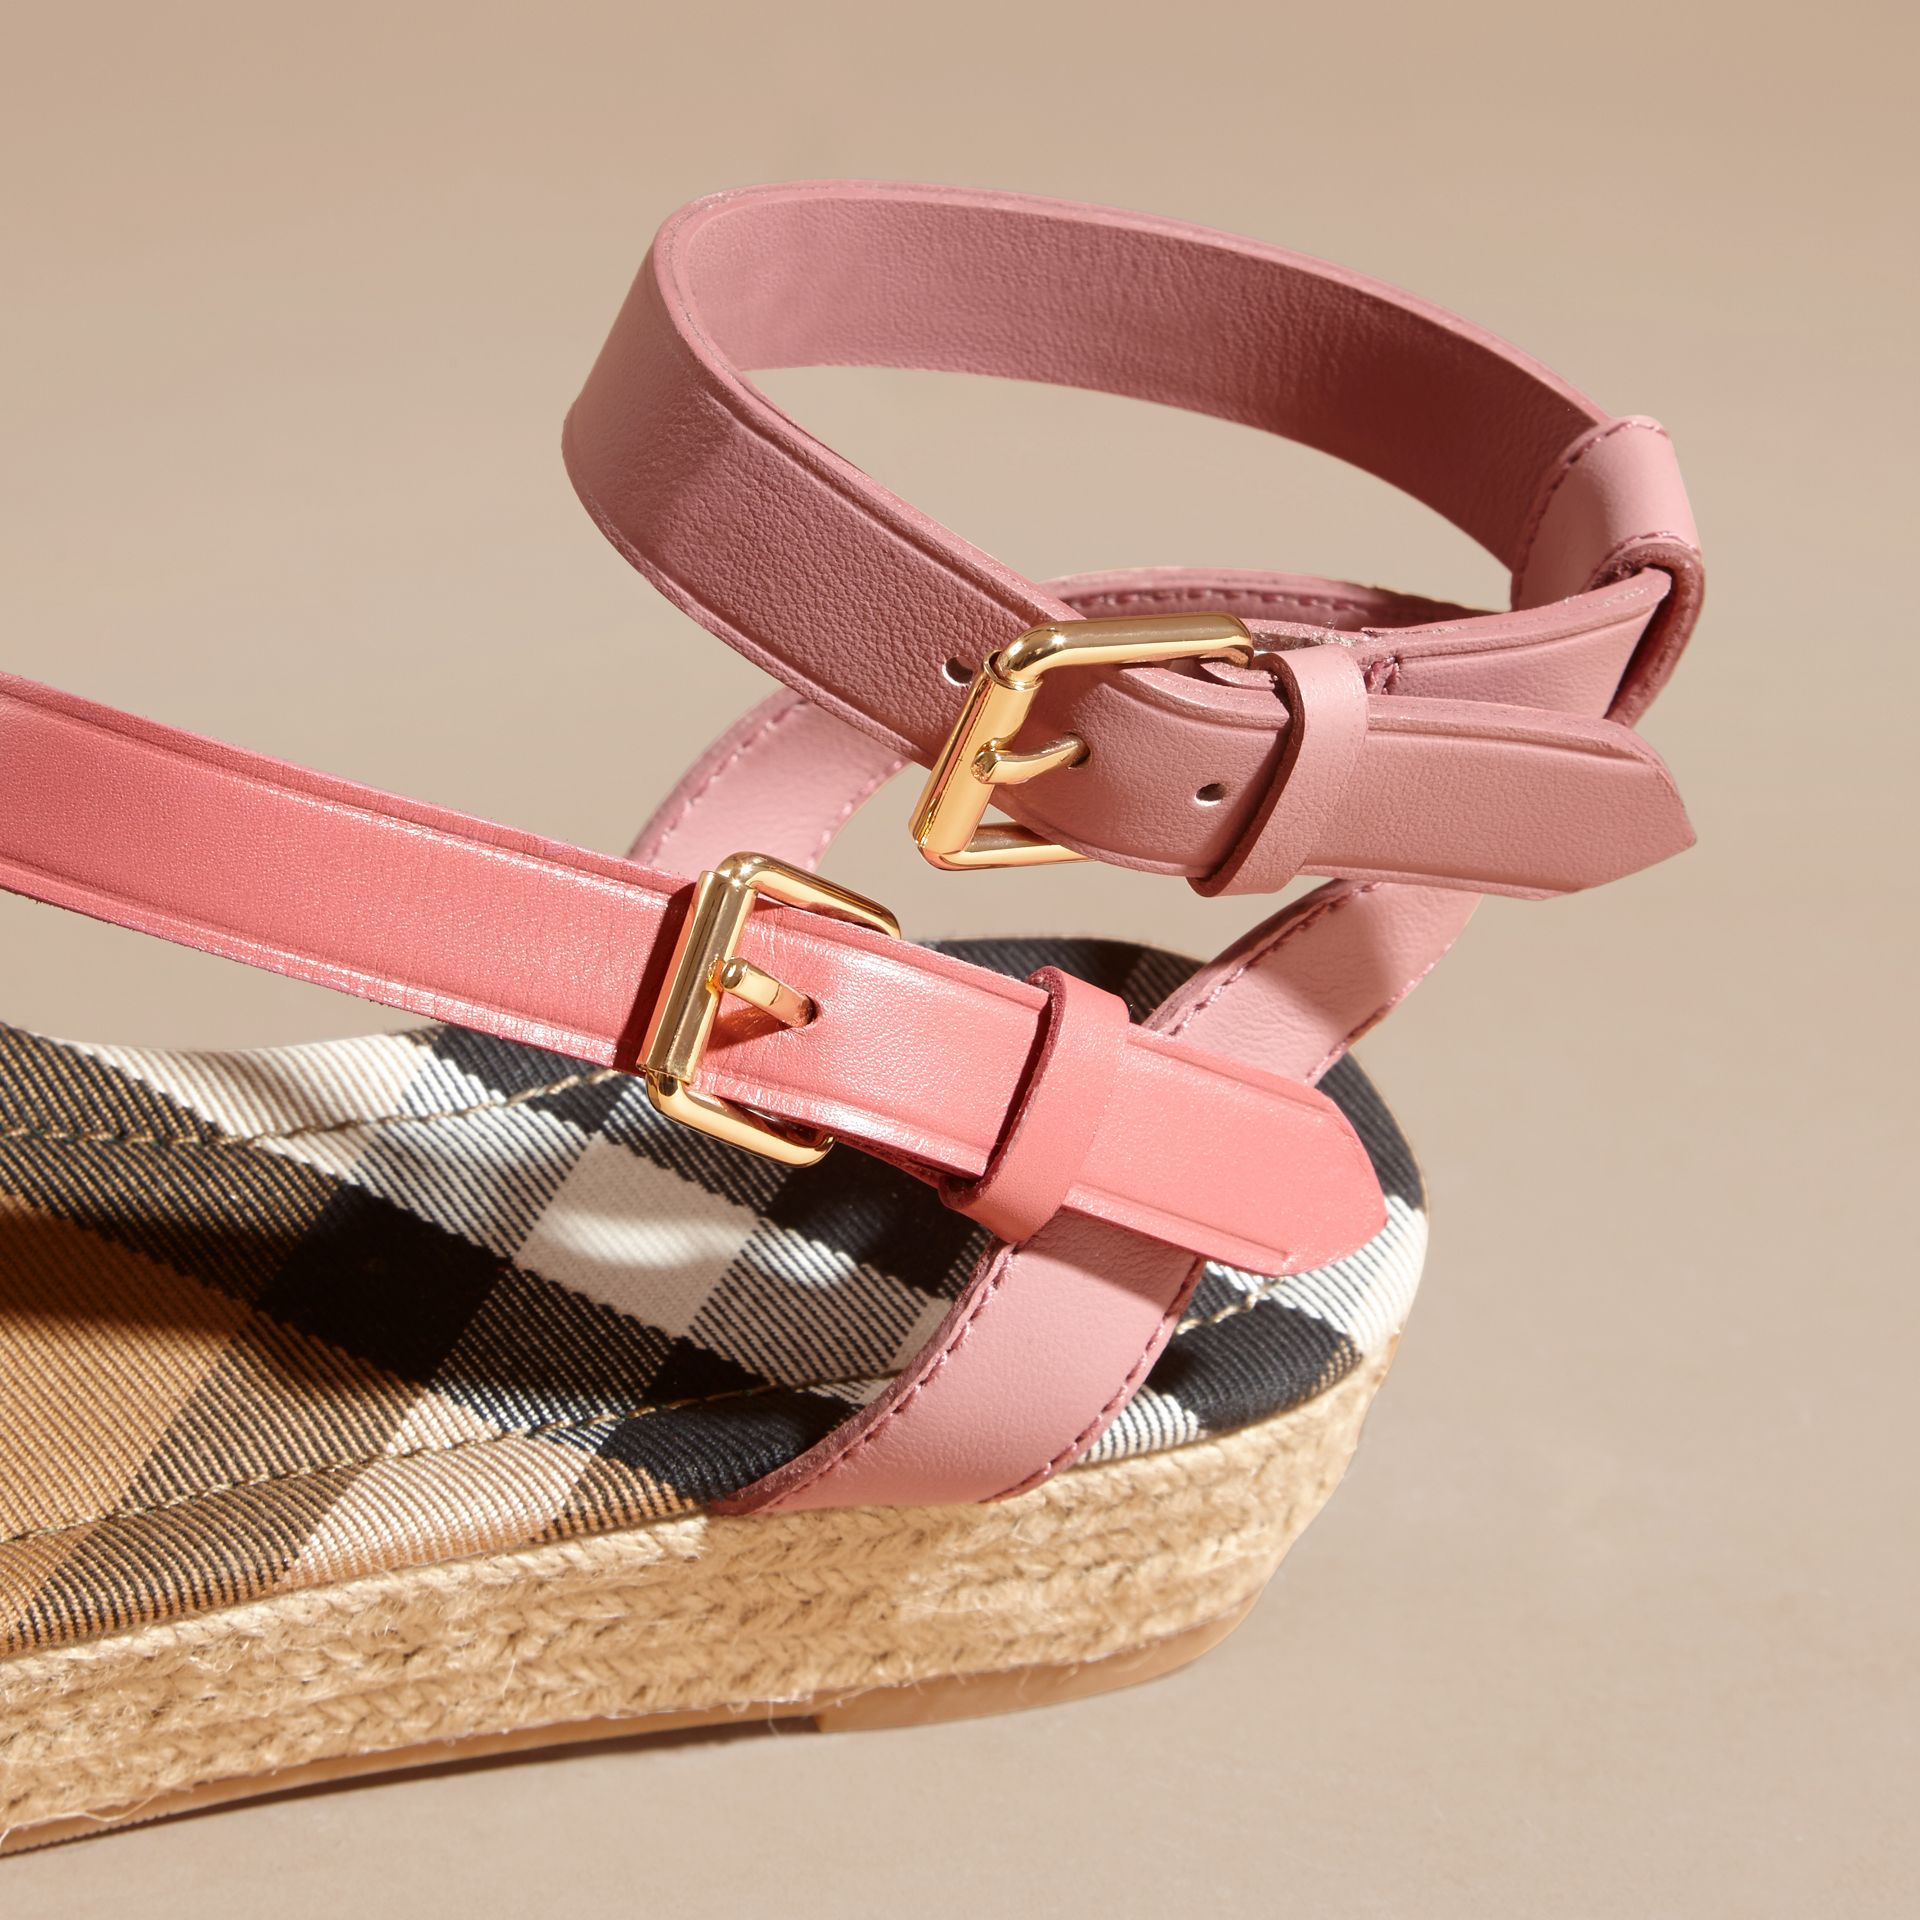 Two-tone Leather Espadrille Sandals in Dusty Pink - Women | Burberry Australia - gallery image 2